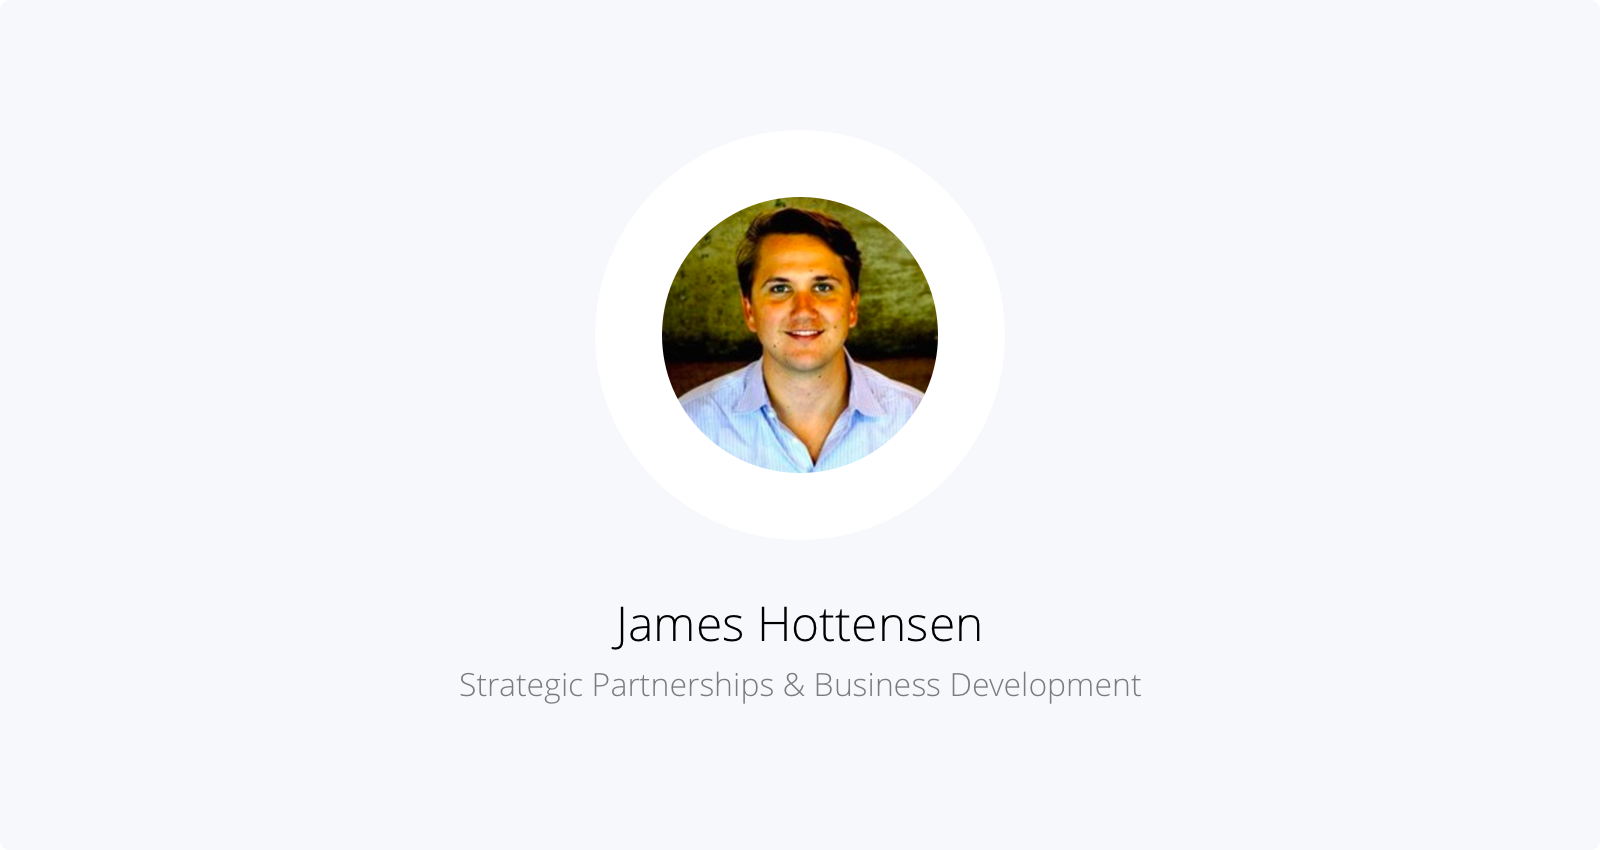 James, a former VC, now a strategic partnerships manager at Capbase